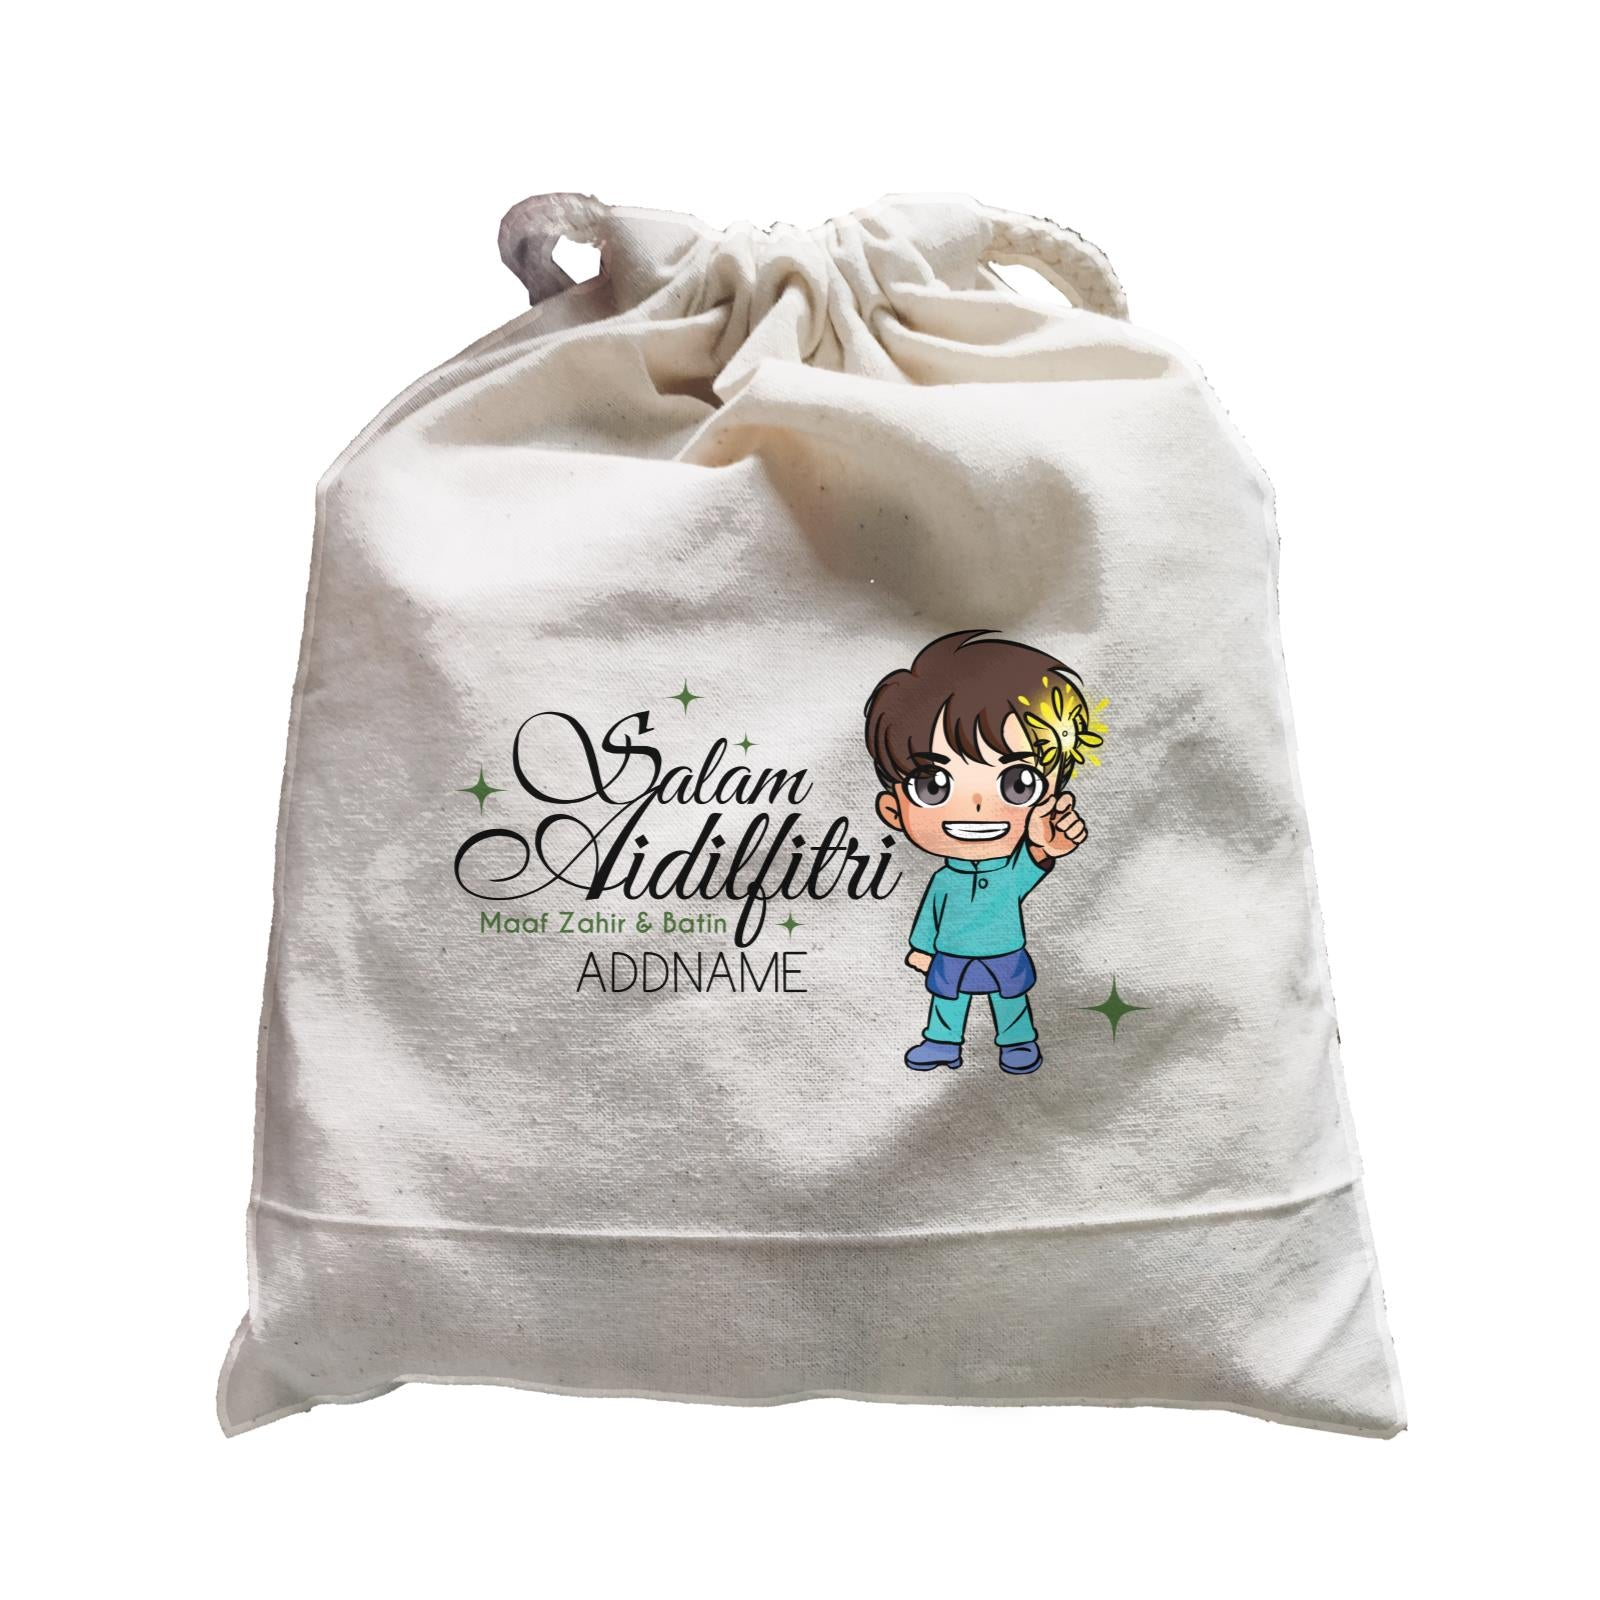 Raya Chibi Wishes Little Boy Addname Wishes Everyone Salam Aidilfitri Maaf Zahir & Batin Accessories Satchel